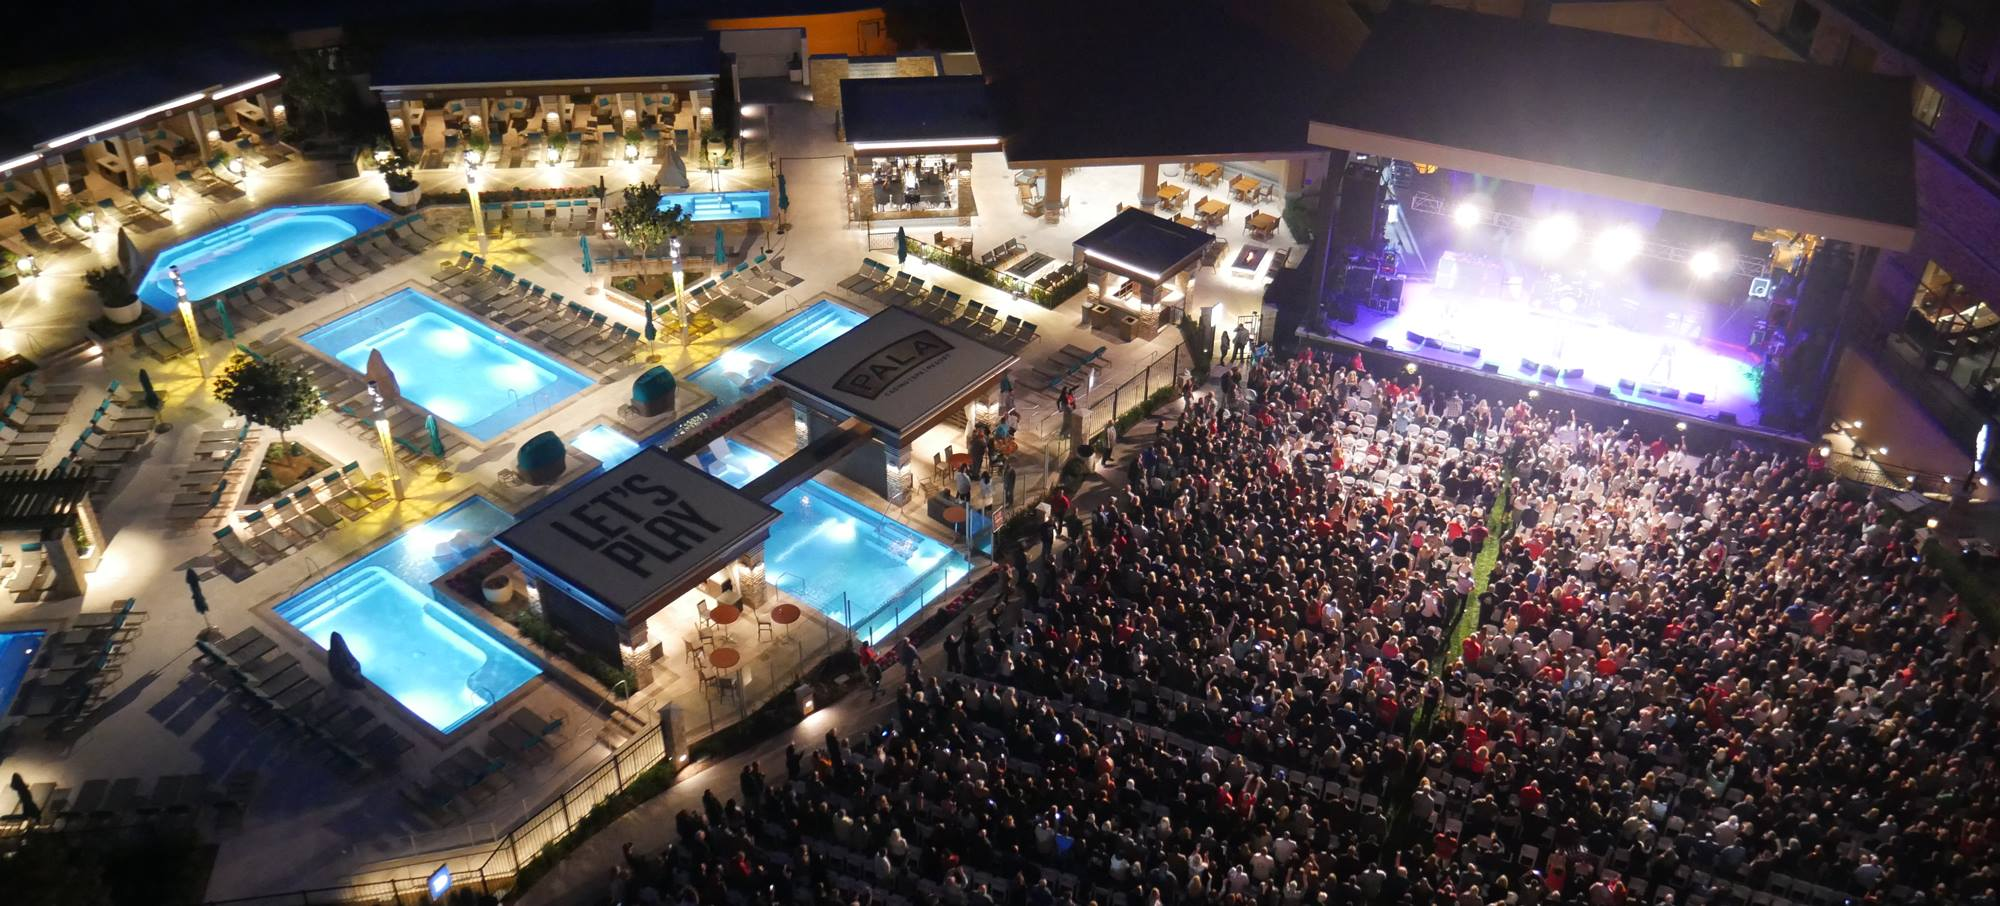 Pala Casino Spa Resort Announces New Outdoor Summer Concert Series